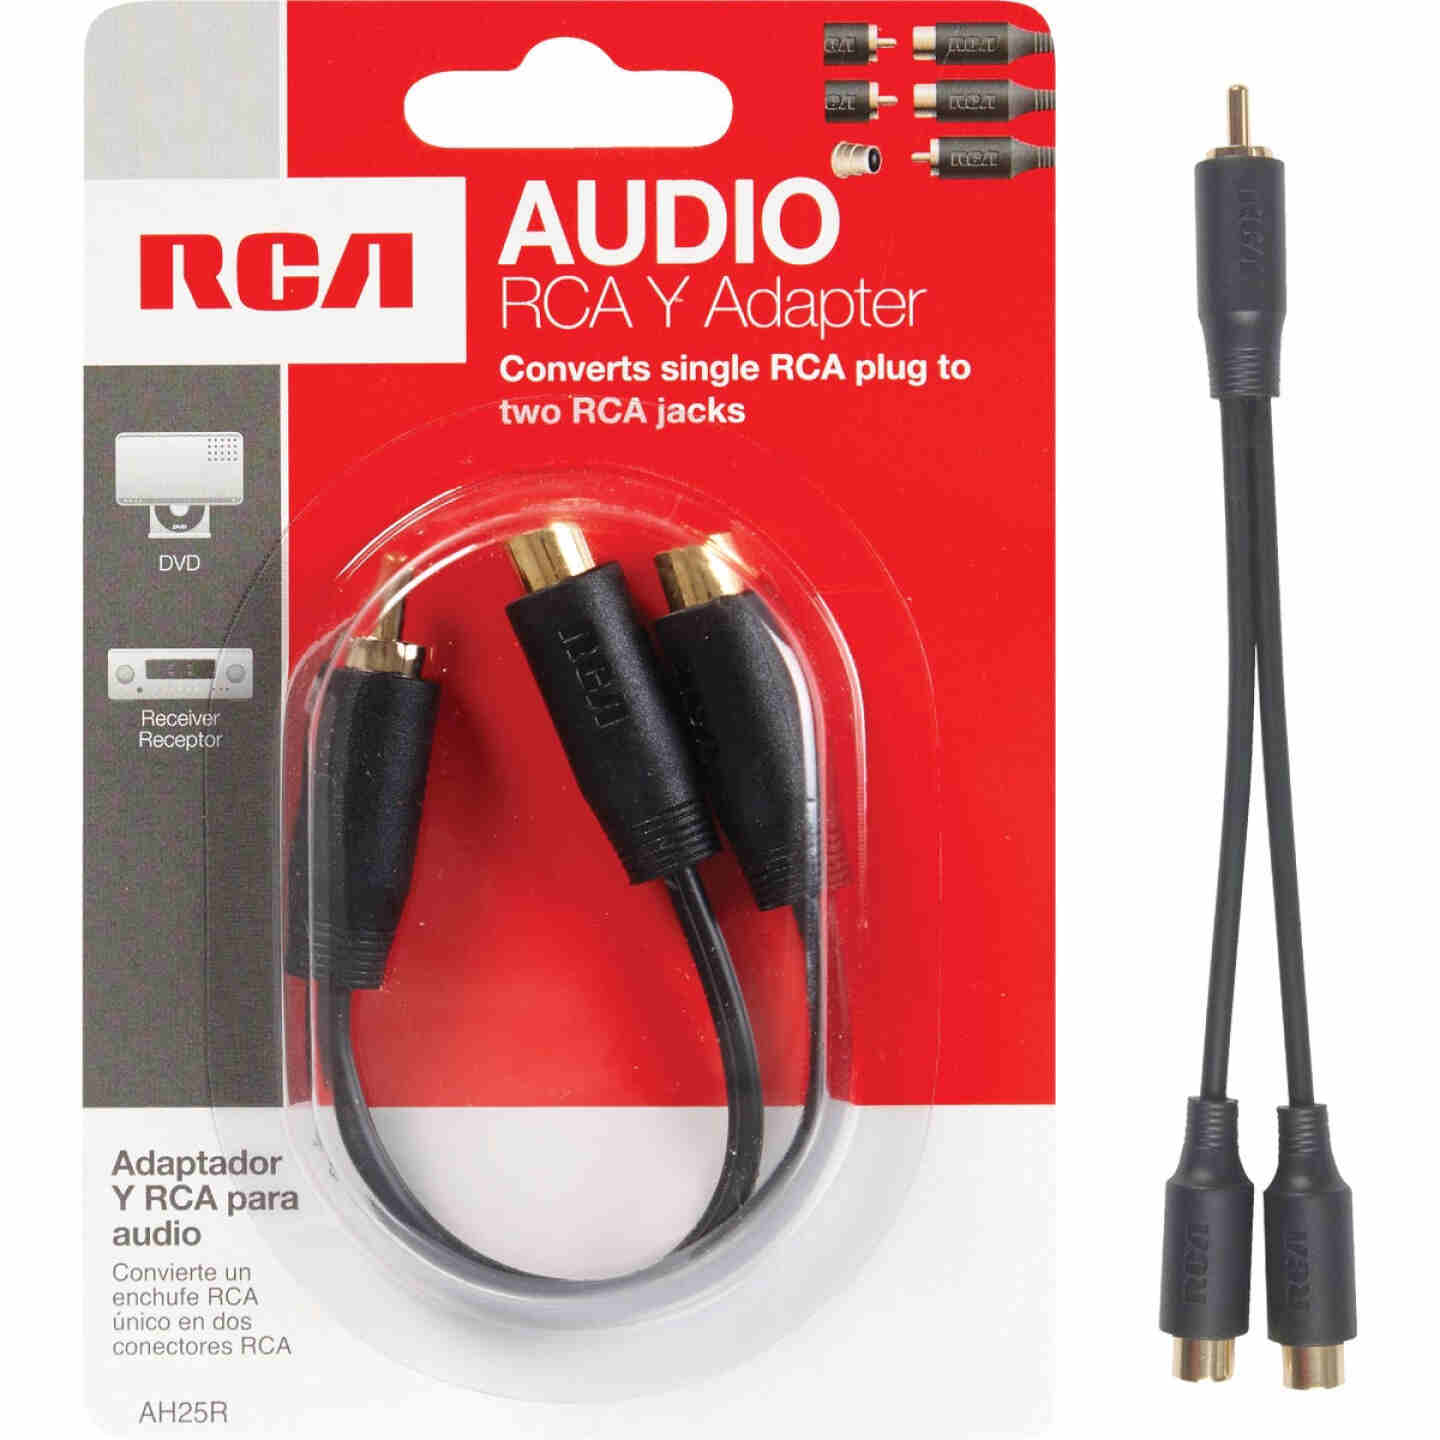 RCA 3 In. Single 3.5 mm Male Double 3.5 mm Female Y-Adapter Image 1